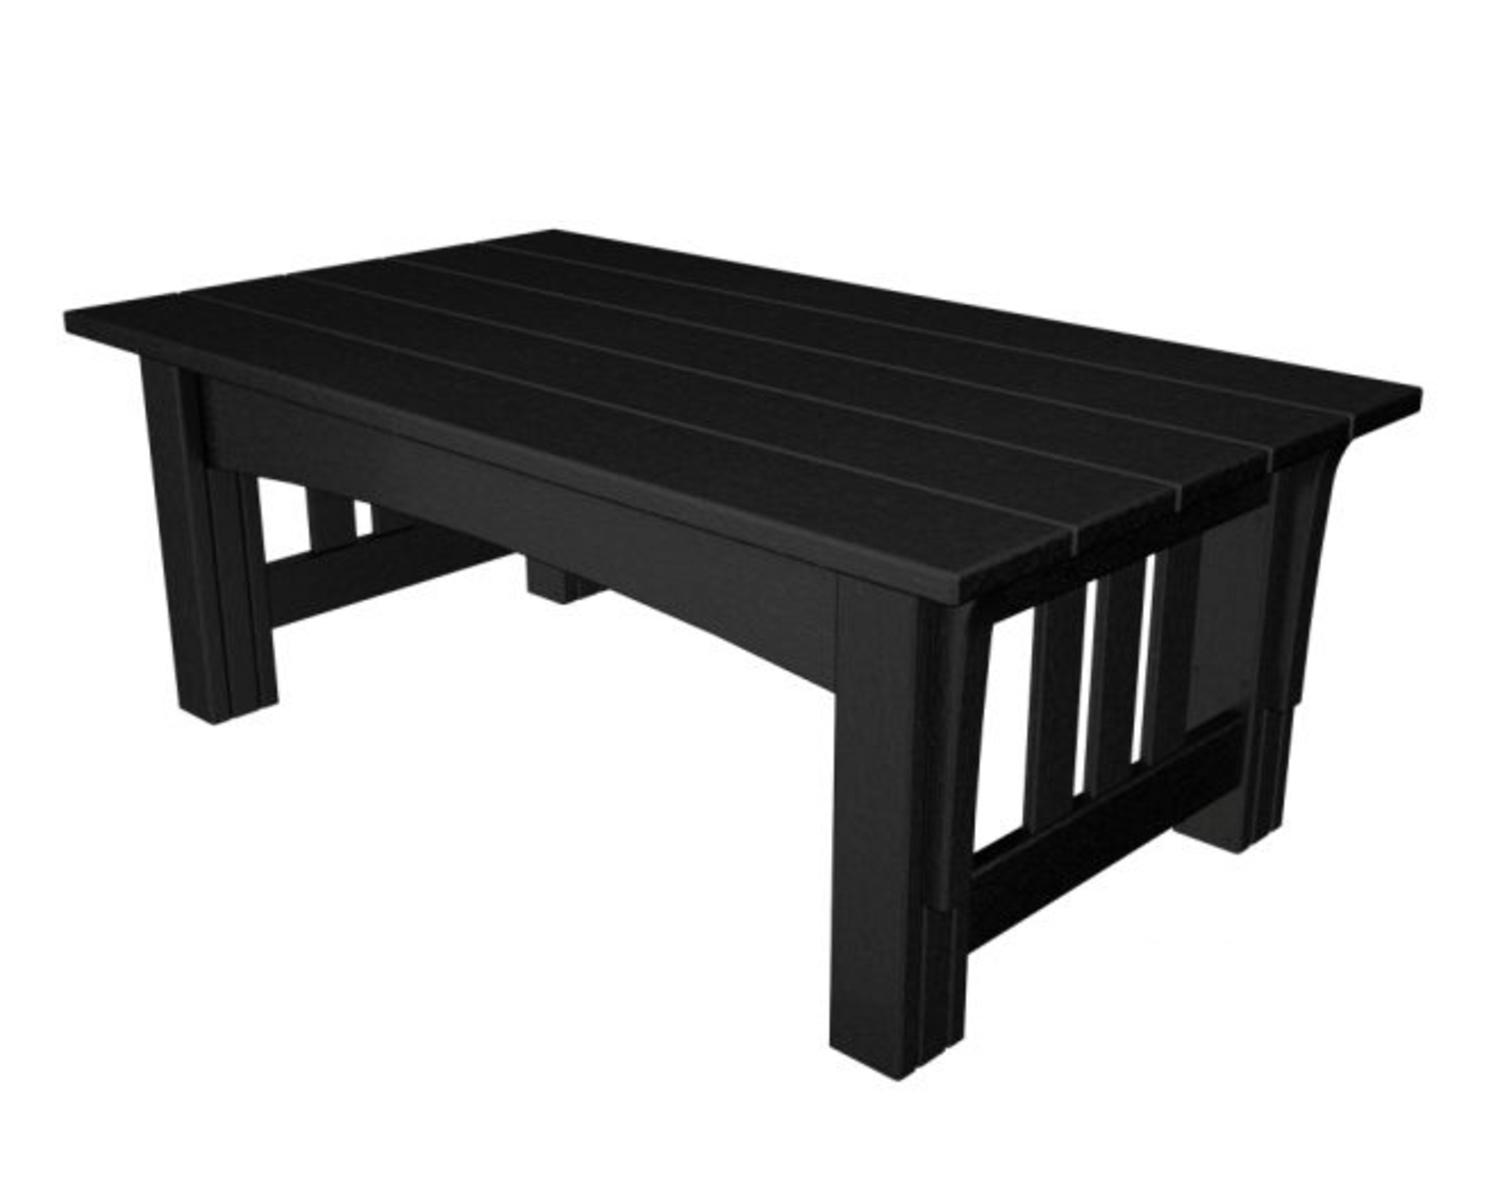 Recycled Earth-Friendly Outdoor Patio Mission Style Coffee Table Black by Eco-Friendly Furnishings